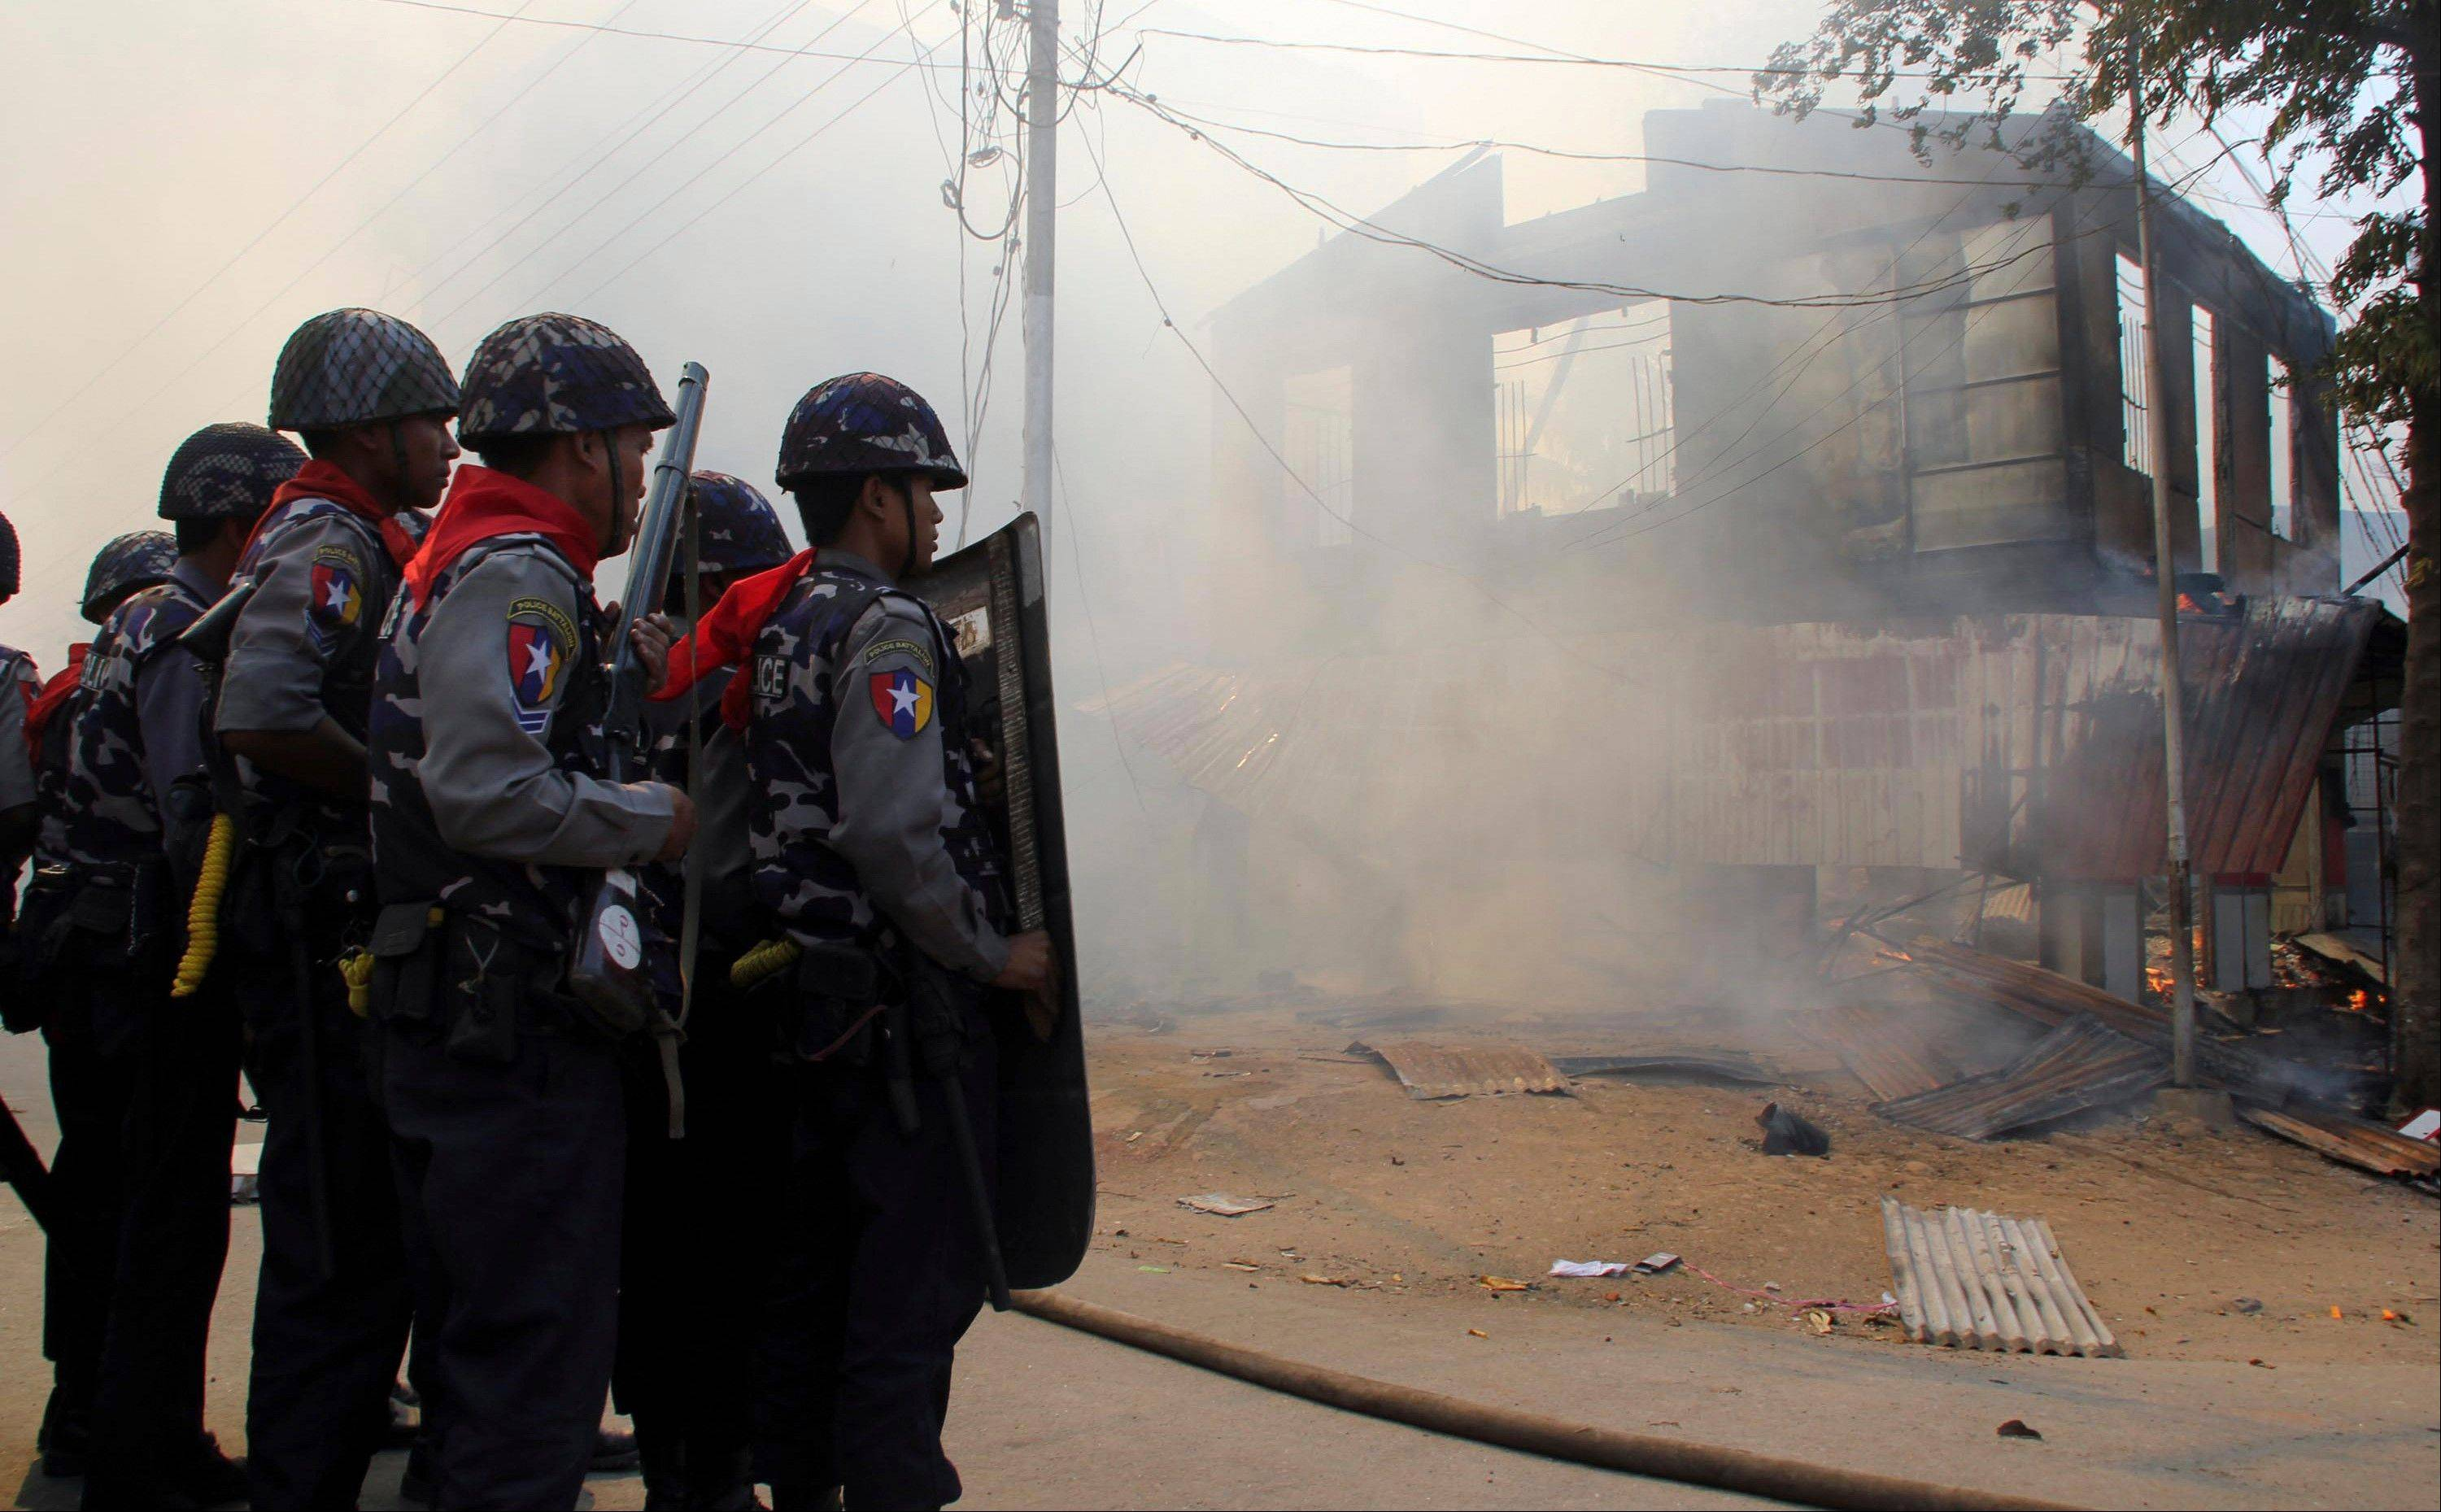 Myanmar police officers provide security around a smoldering building following ethnic unrest between Buddhists and Muslims in Meikhtila, Mandalay division. Spasms of spreading, communal violence show the reform path is bumpier that expected.